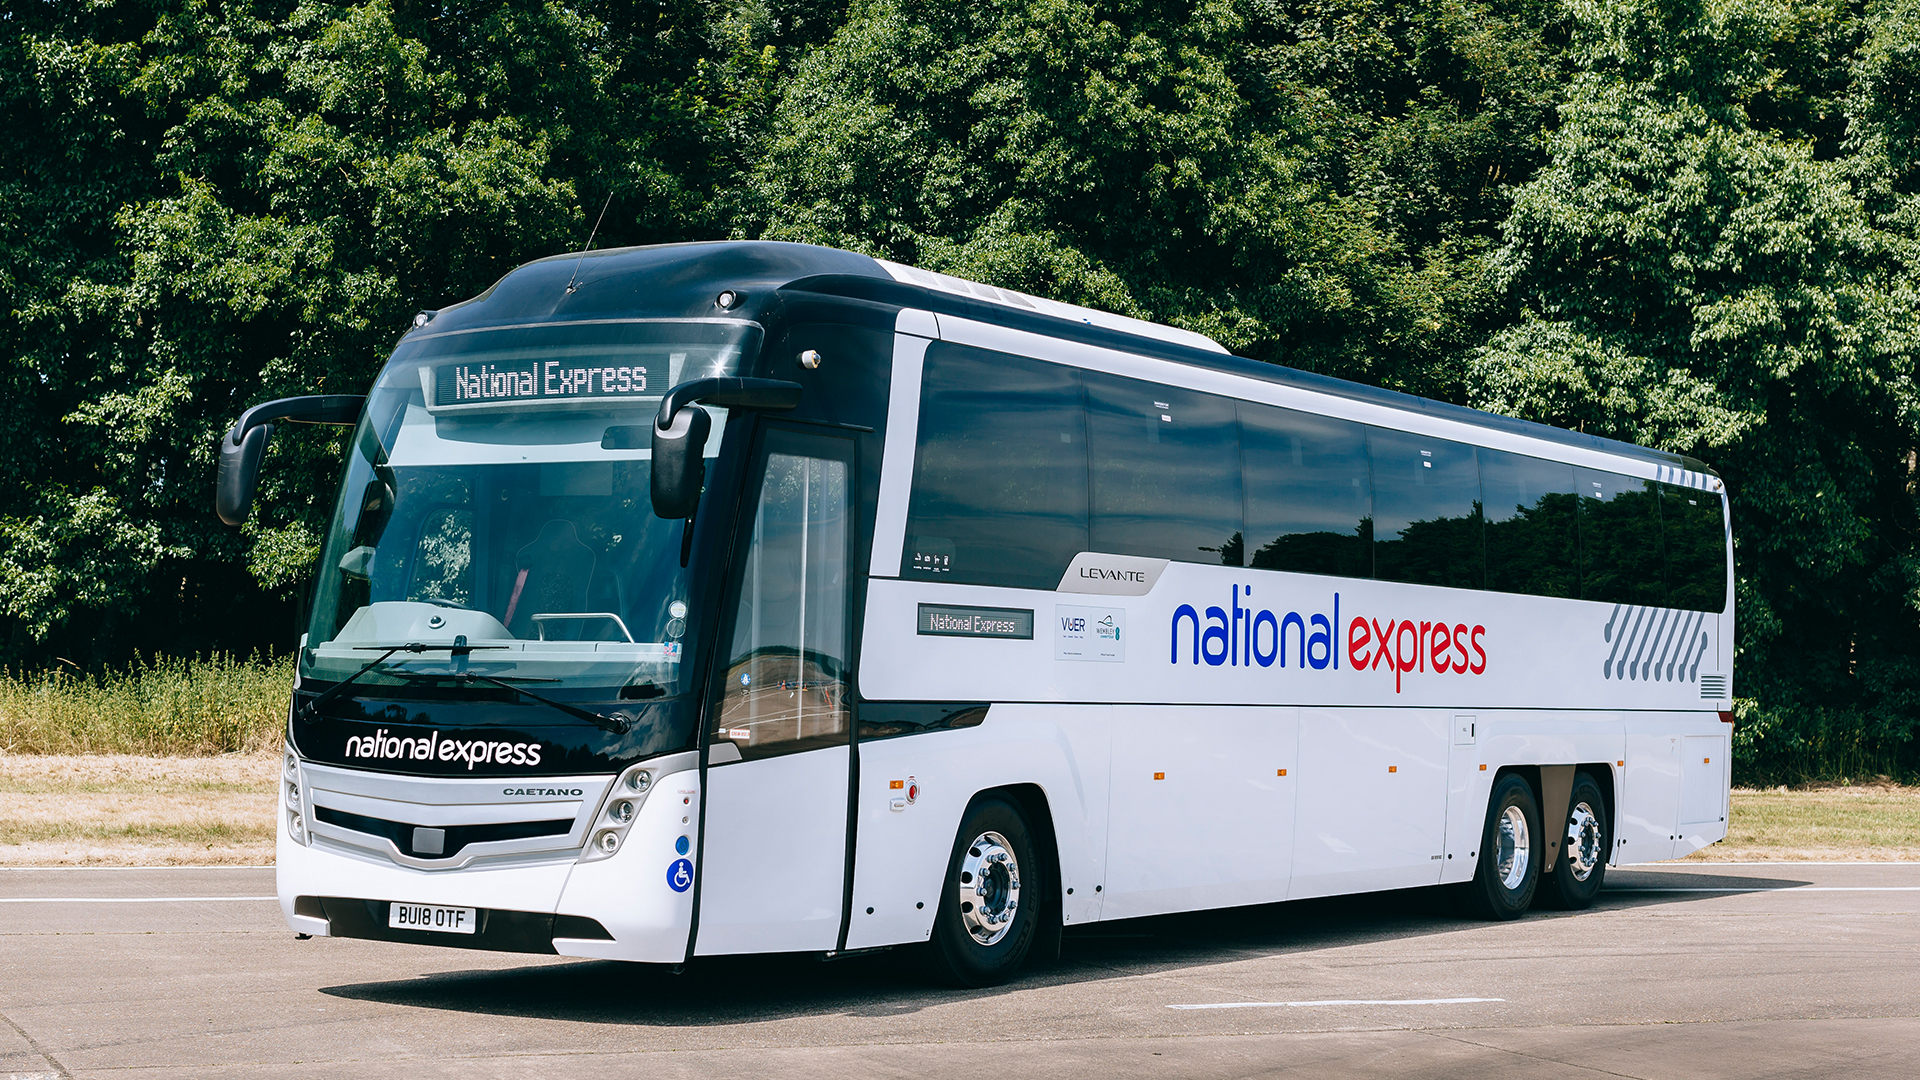 Bicester Village National Express Main